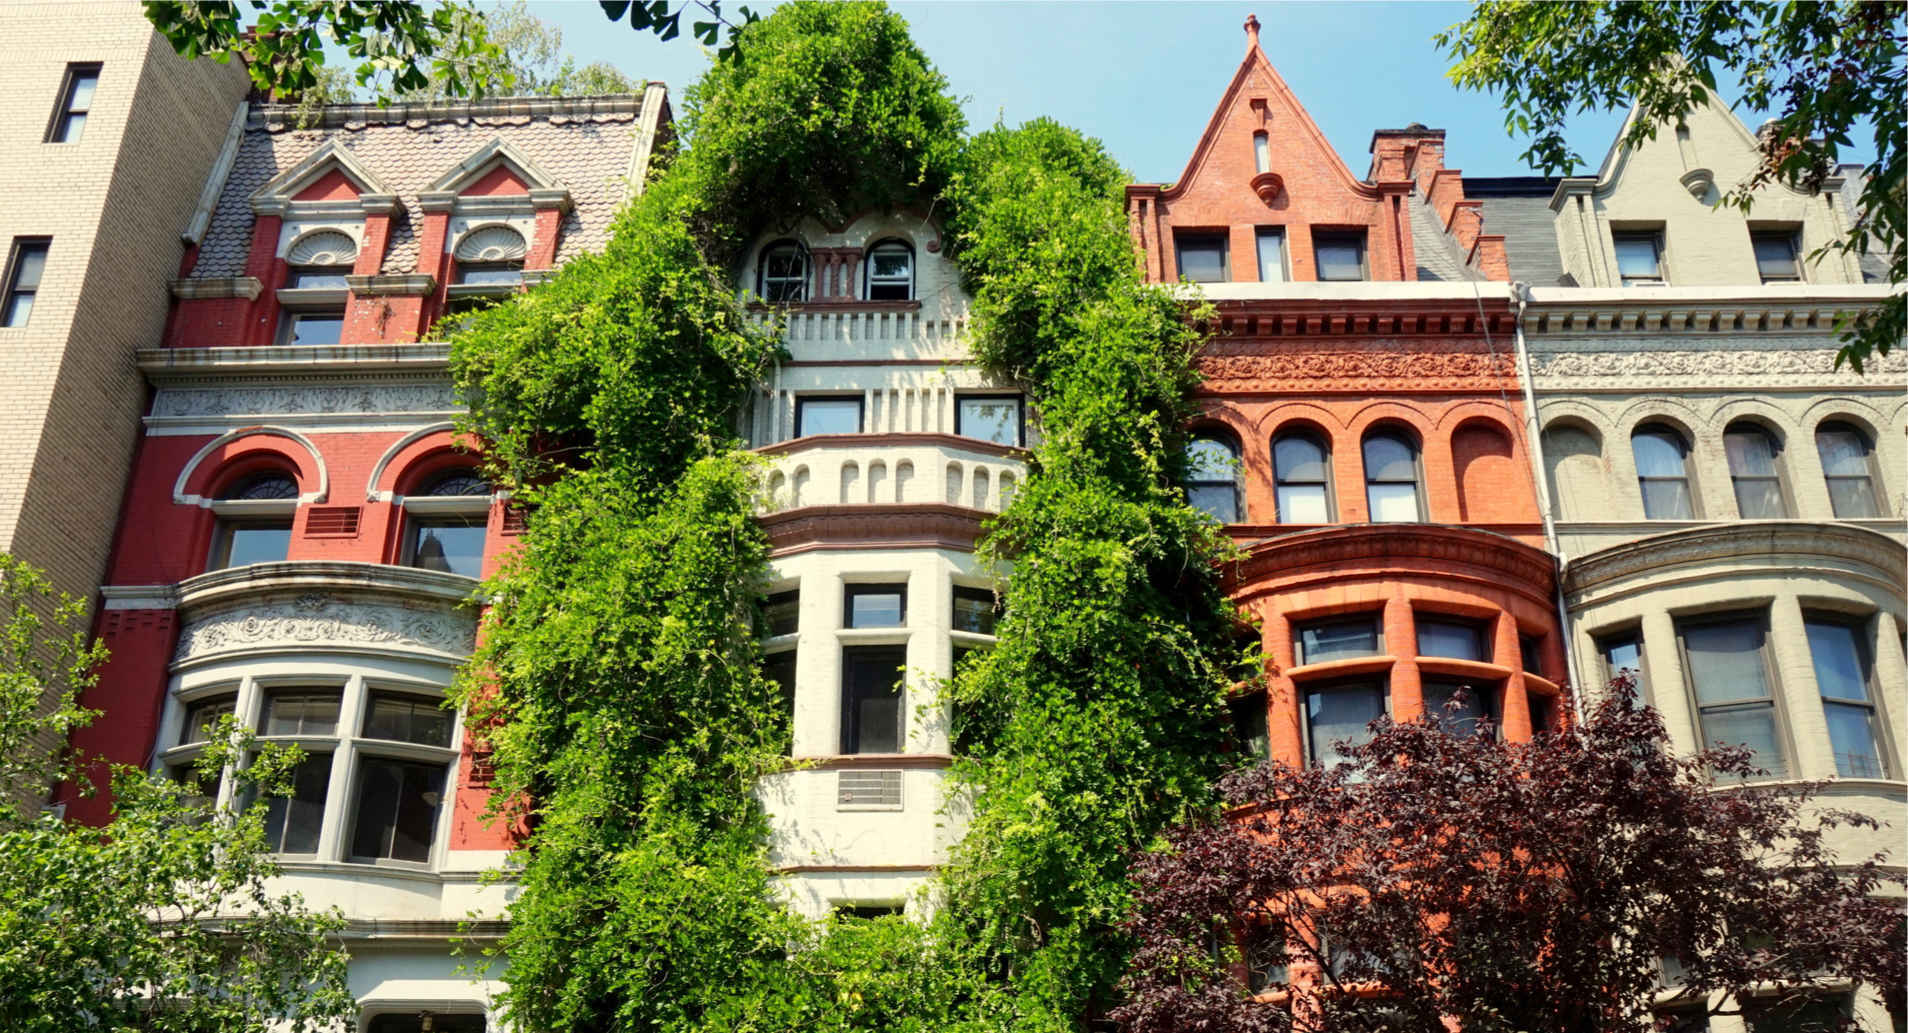 Residential architecture on the Upper West Side, Manhattan, New York